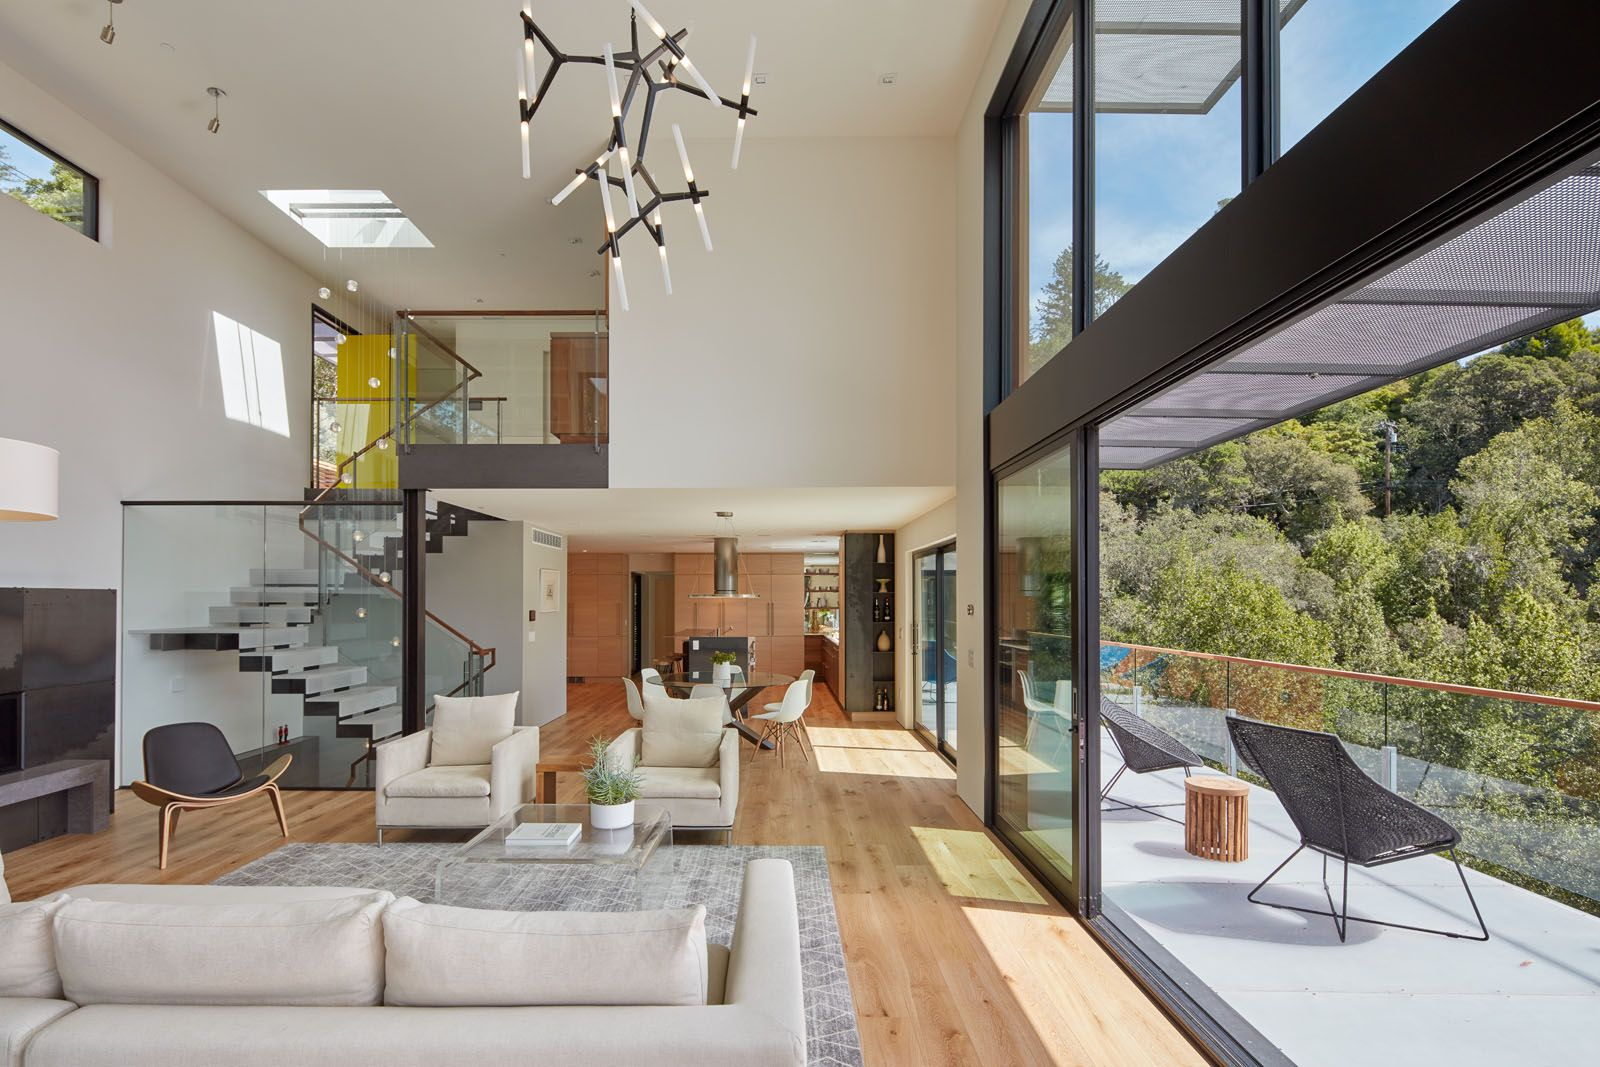 Glass Door Systems Open The Home To The Outdoor Vistas. While Oak Flooring  Throughout. Acrylic Resin Stair Treads ...